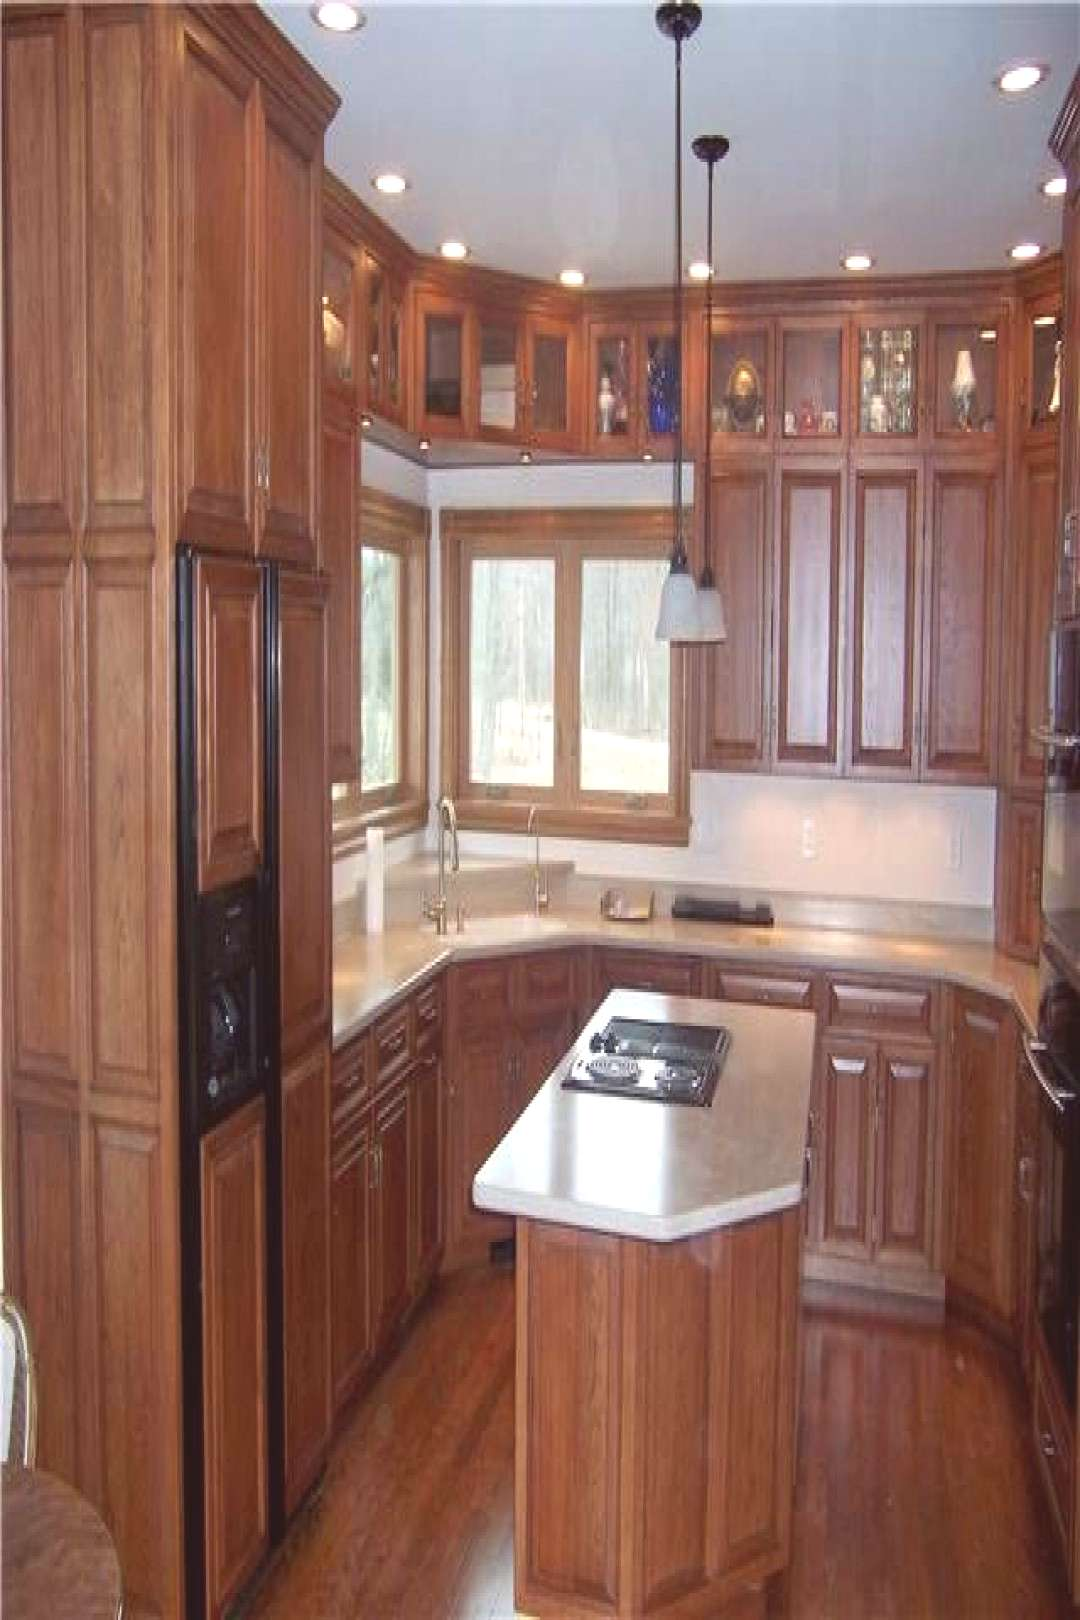 Hickory cabinets - Raised panel miter corner doors, drawer fronts, and side pane...#cabinets